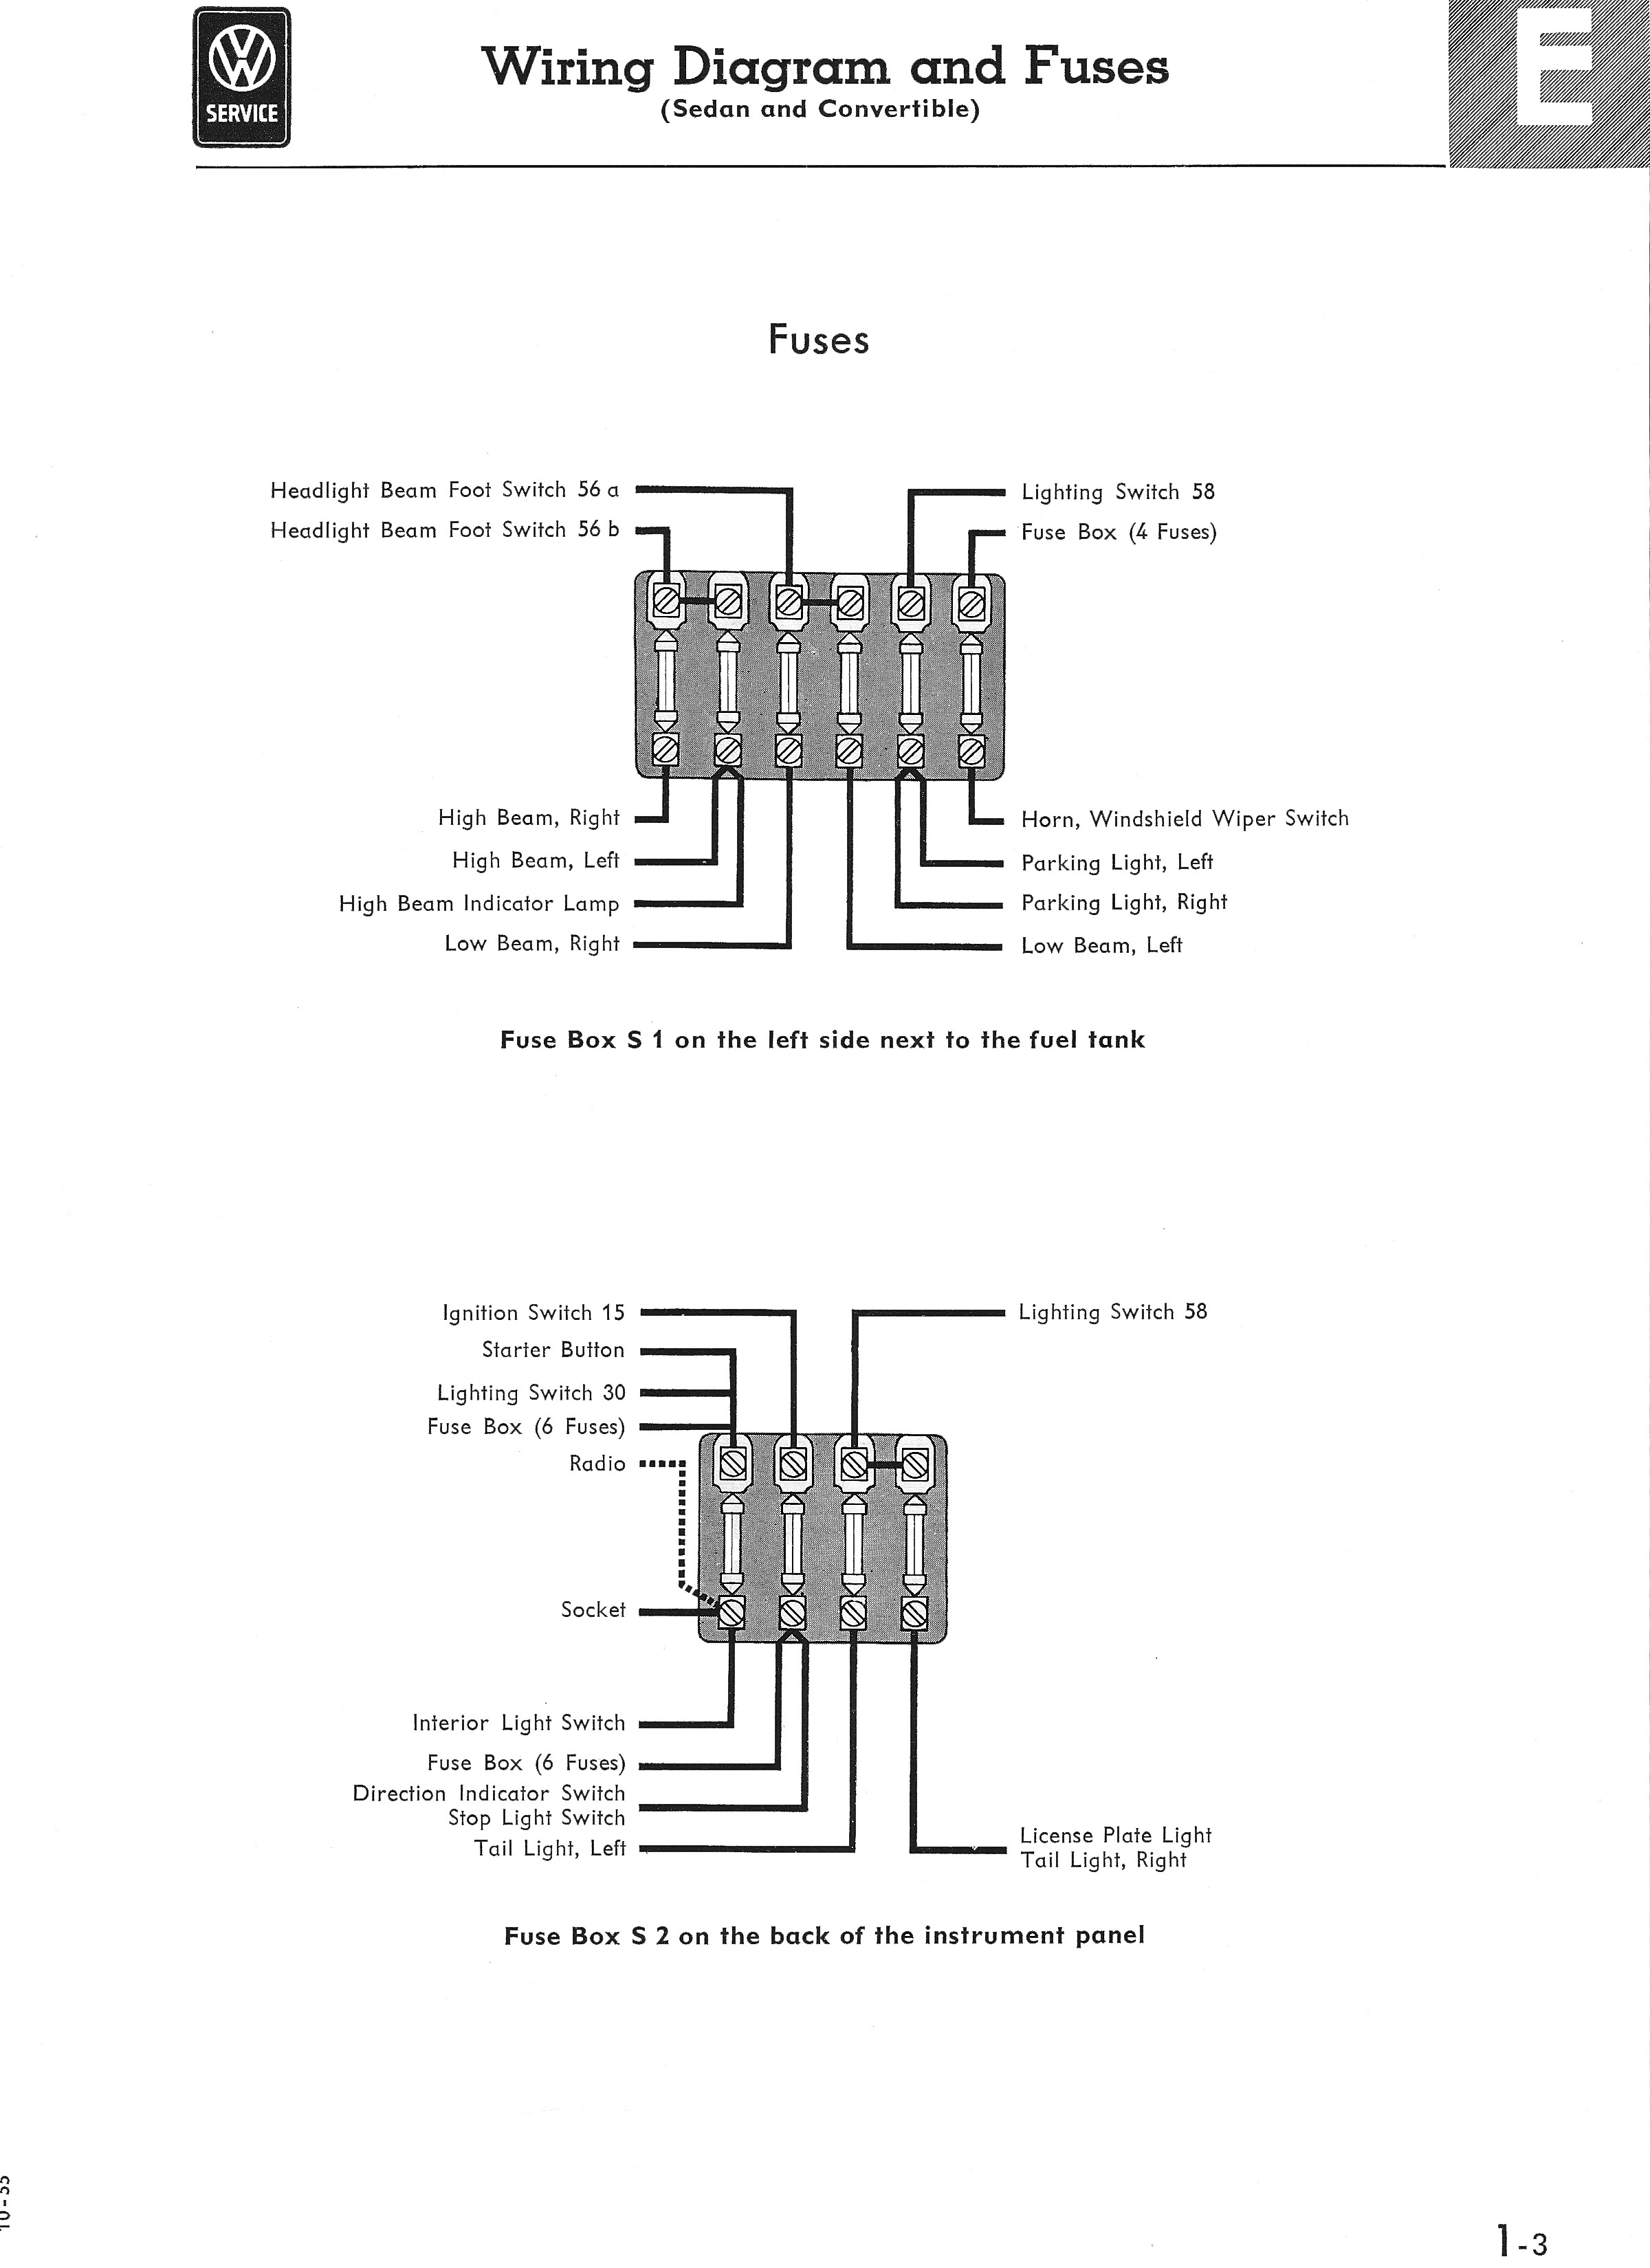 Type 1 Wiring Diagrams 2001 F250 Cab Fuse Panel Diagram